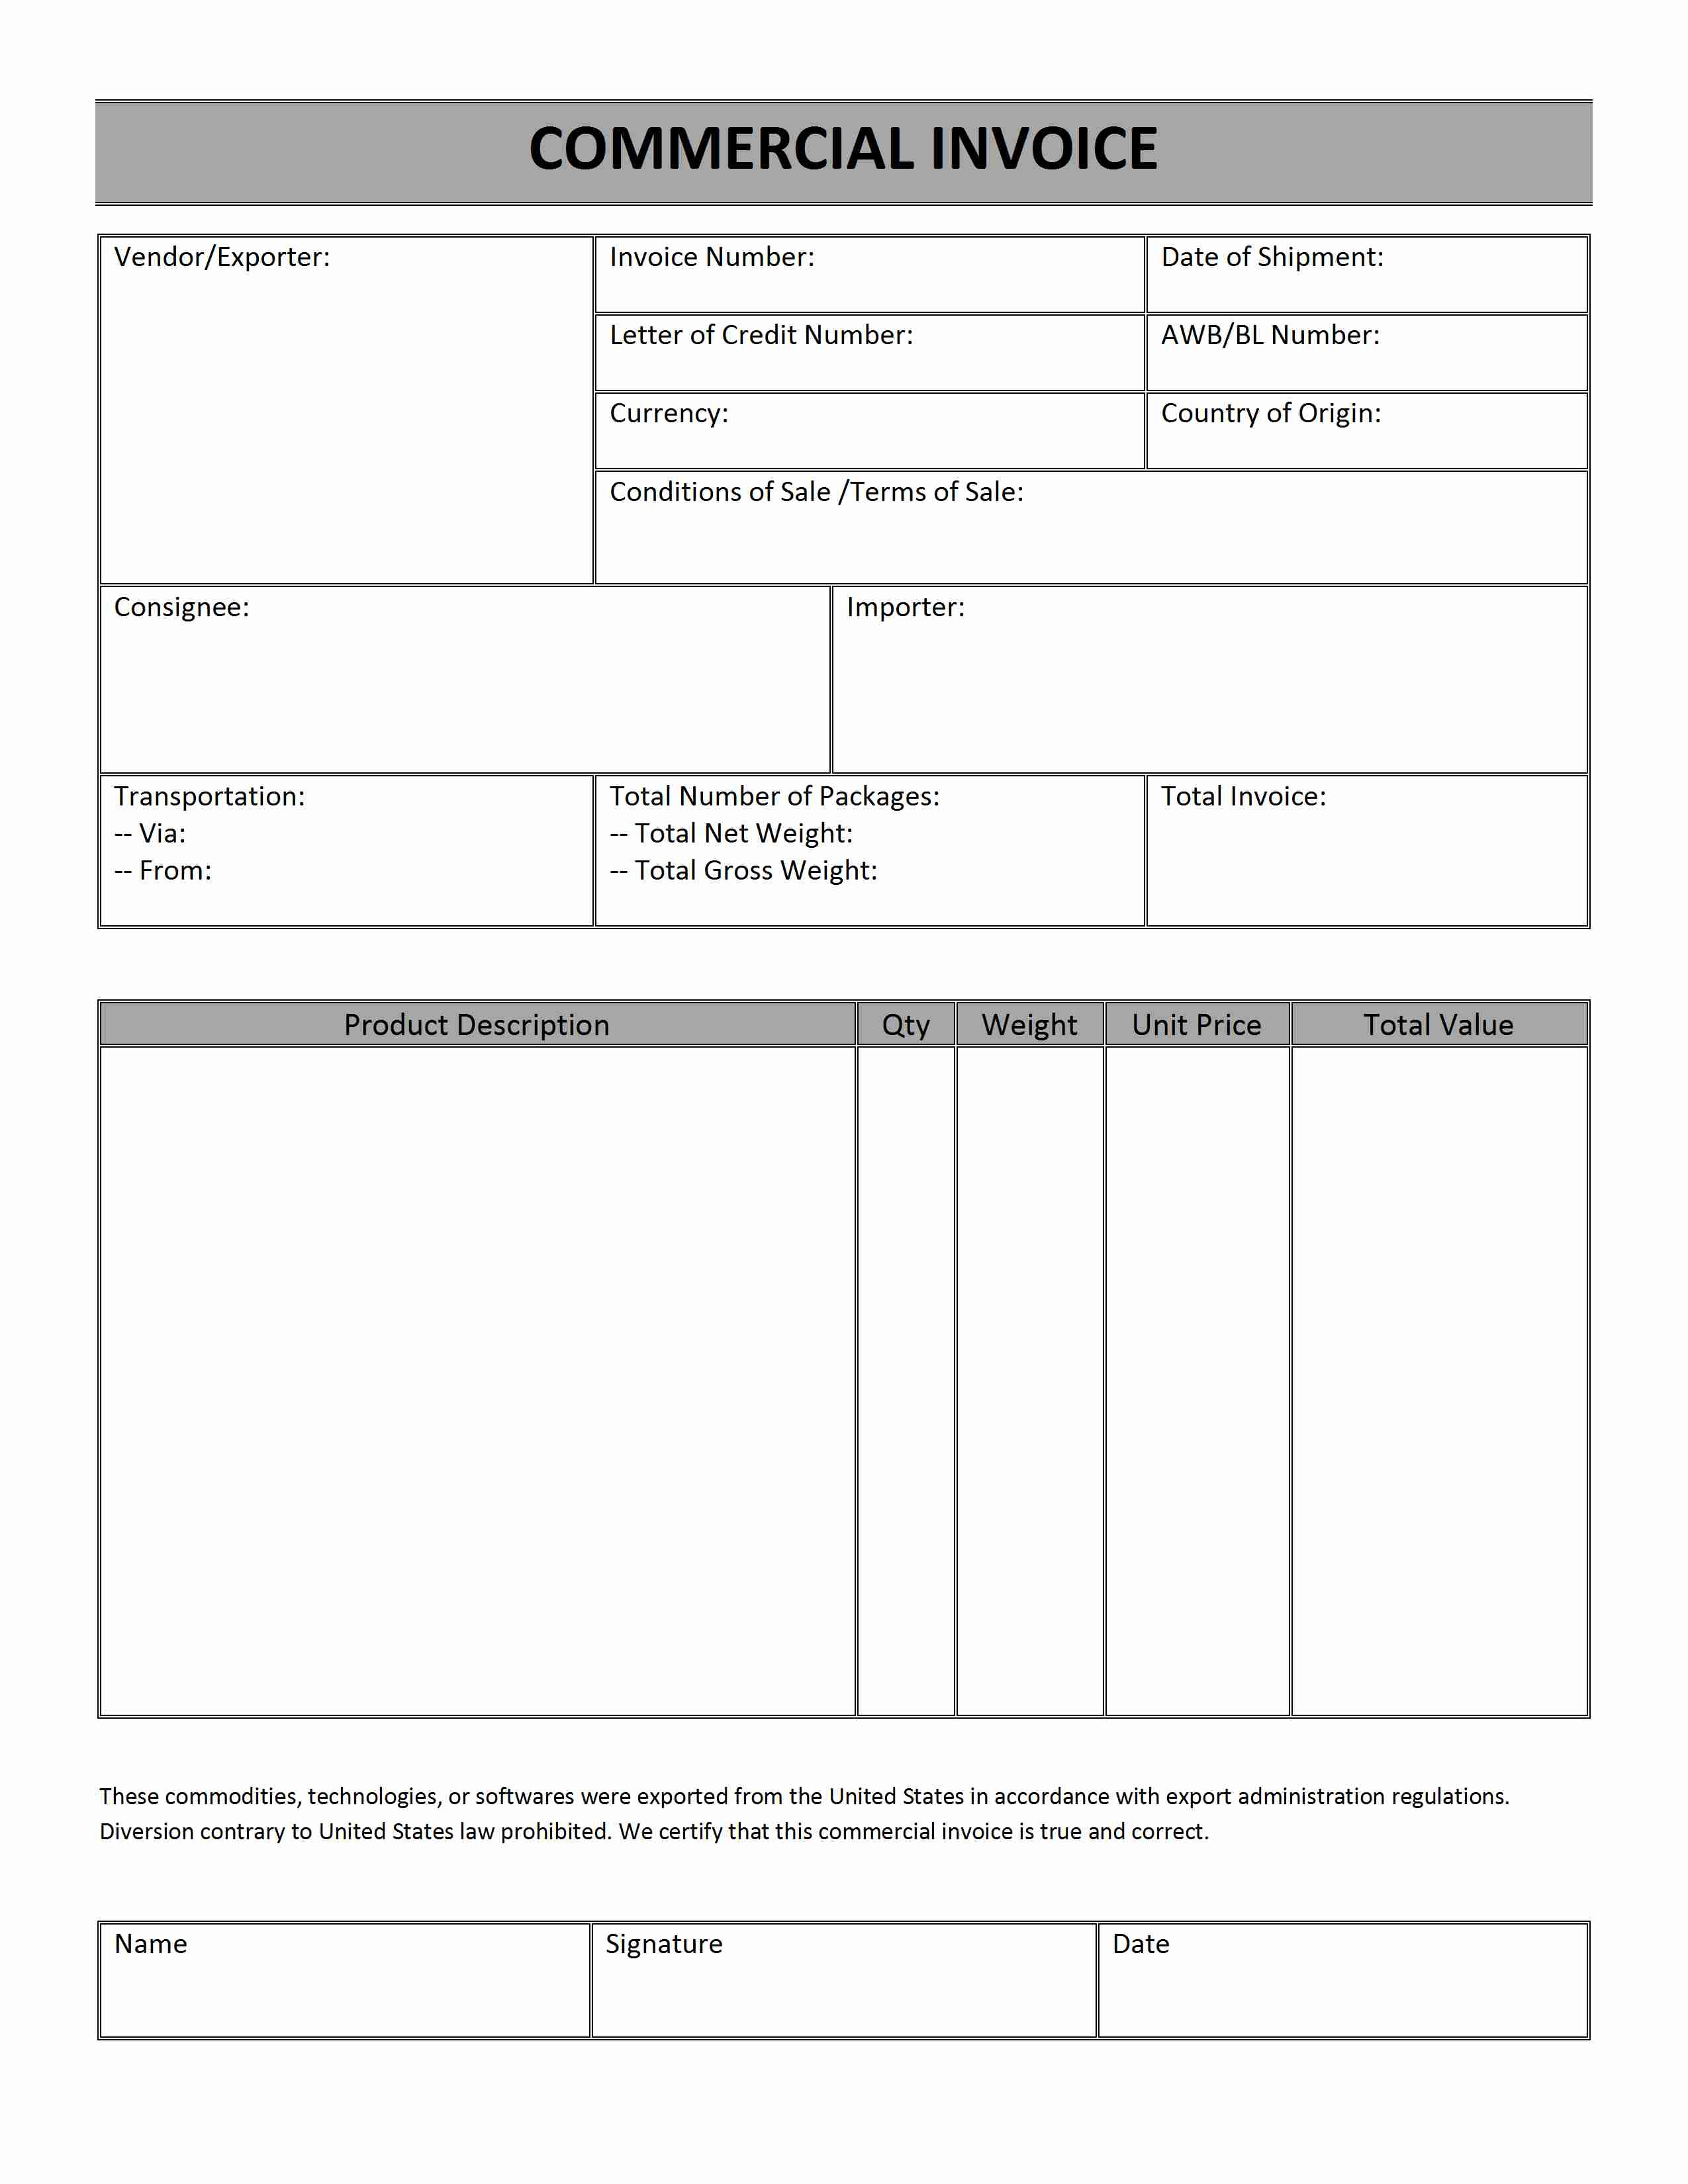 Soulfulpowerus  Ravishing Printable Sales Invoice Simple Invoice Form Free Invoice  With Great Printable Receipt Free  Free Printable Raffle Tickets  Receipt   Printable With Alluring What Is Mean By Invoice Also Quickbooks Email Invoice Setup In Addition Commercial Invoice Definition And Massage Invoice As Well As Handyman Invoice Template Additionally Company Invoice Template From Happytomco With Soulfulpowerus  Great Printable Sales Invoice Simple Invoice Form Free Invoice  With Alluring Printable Receipt Free  Free Printable Raffle Tickets  Receipt   Printable And Ravishing What Is Mean By Invoice Also Quickbooks Email Invoice Setup In Addition Commercial Invoice Definition From Happytomco